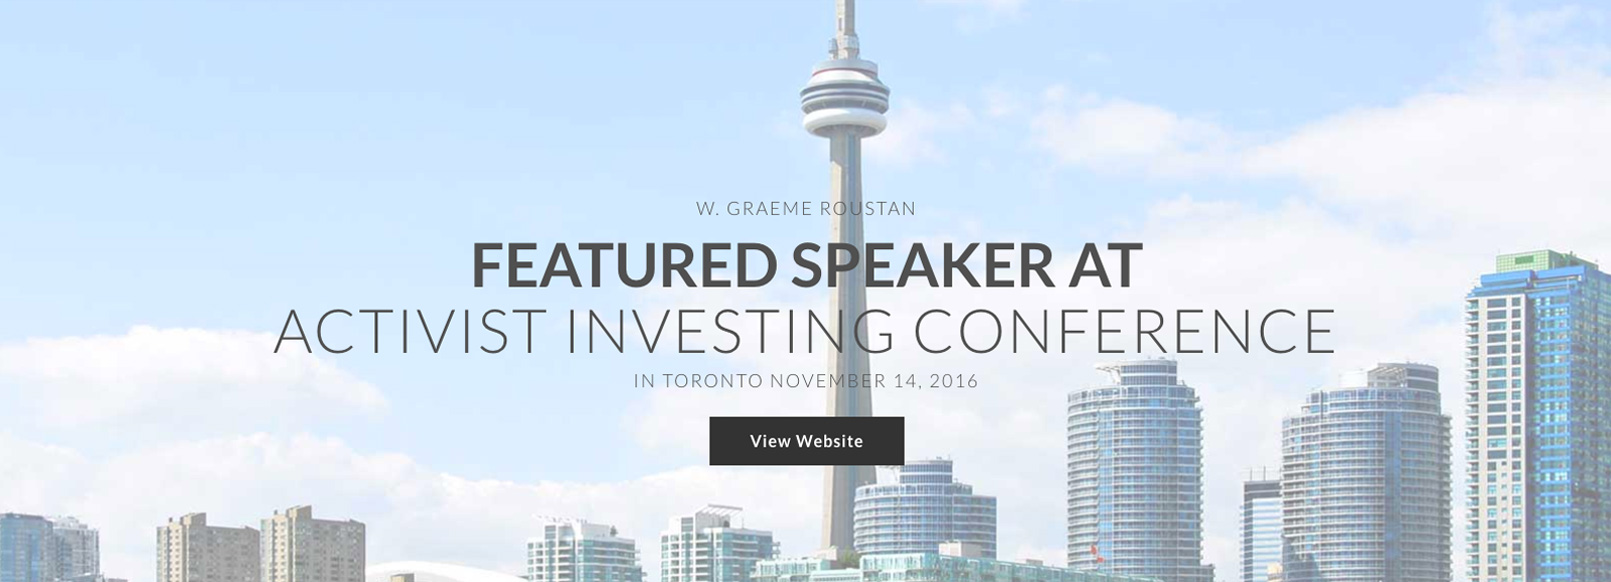 Home Page Sliders Featured Speaker at Upcoming Activist Investing Conference